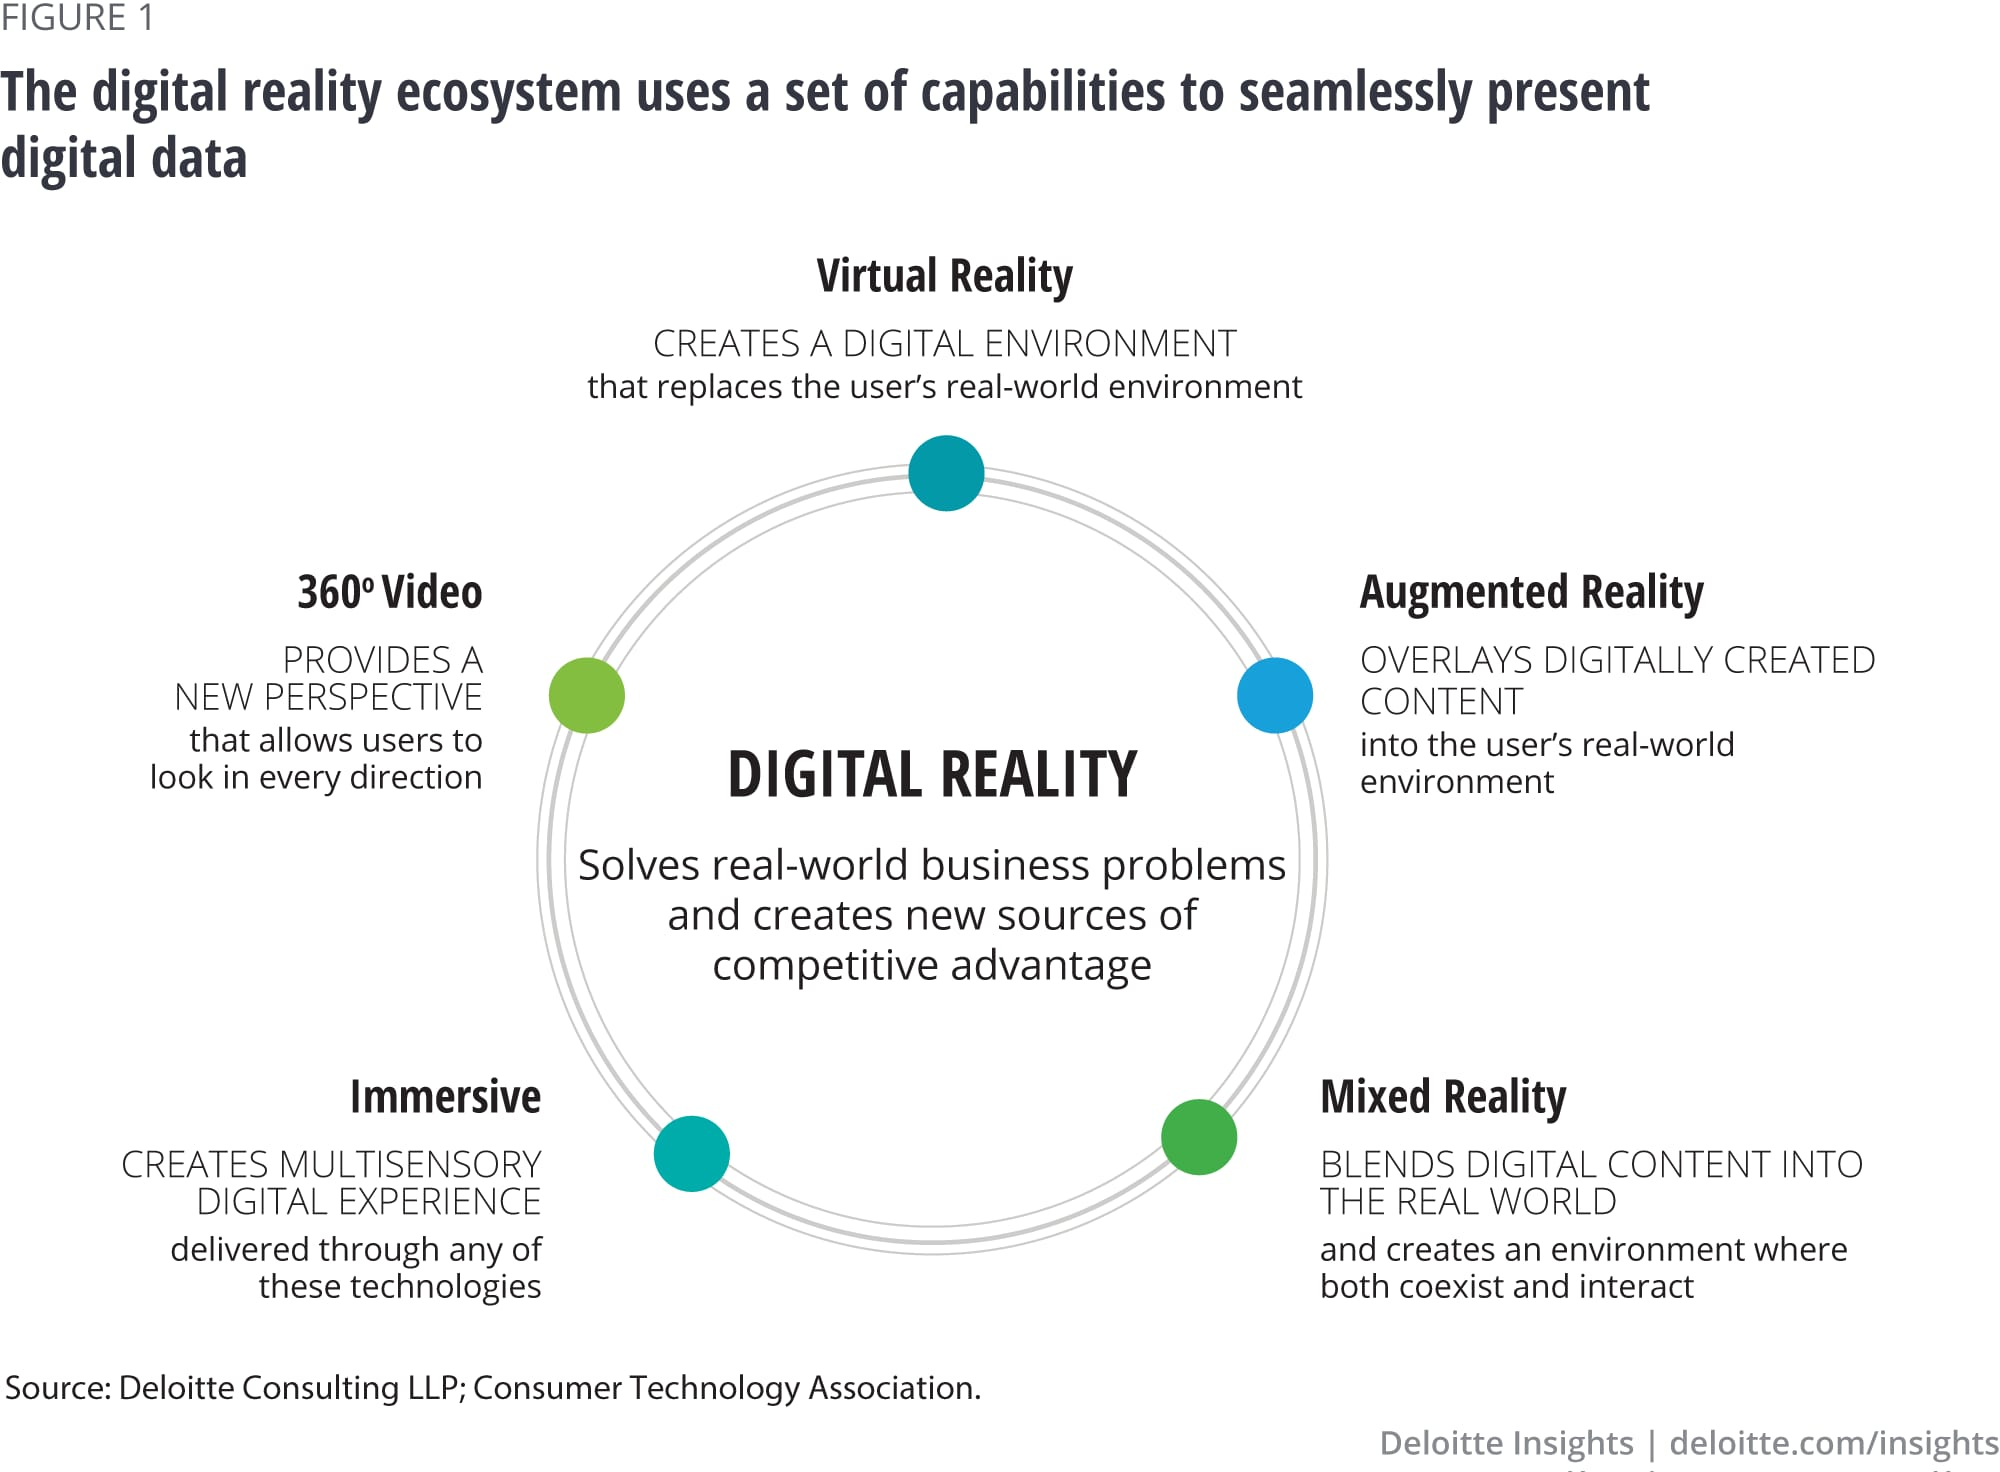 The digital reality ecosystem uses a set of capabilities to seamlessly present digital data